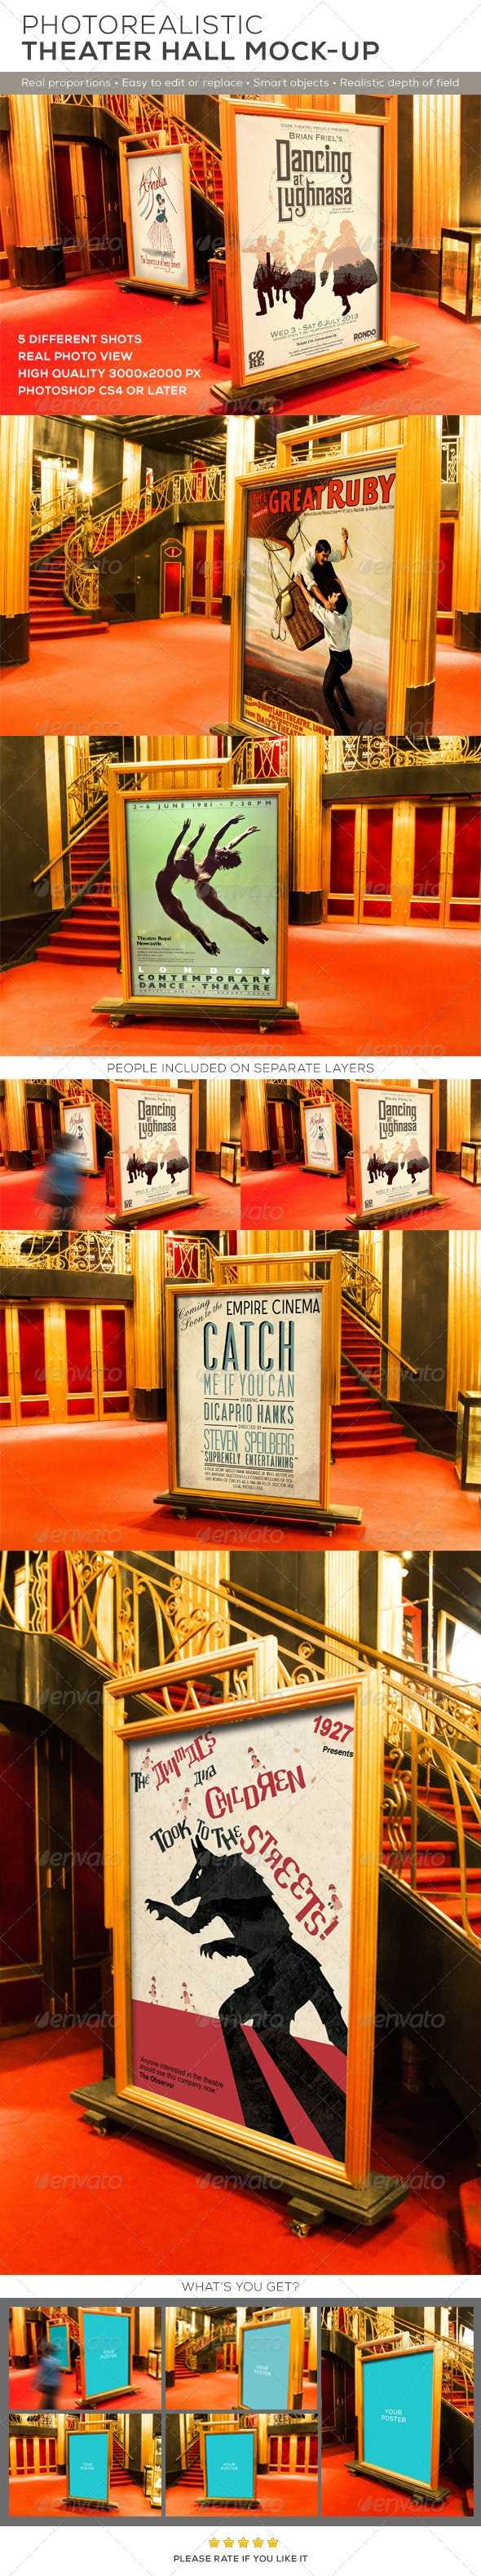 Theater Hall Poster Mock-up - Posters Print